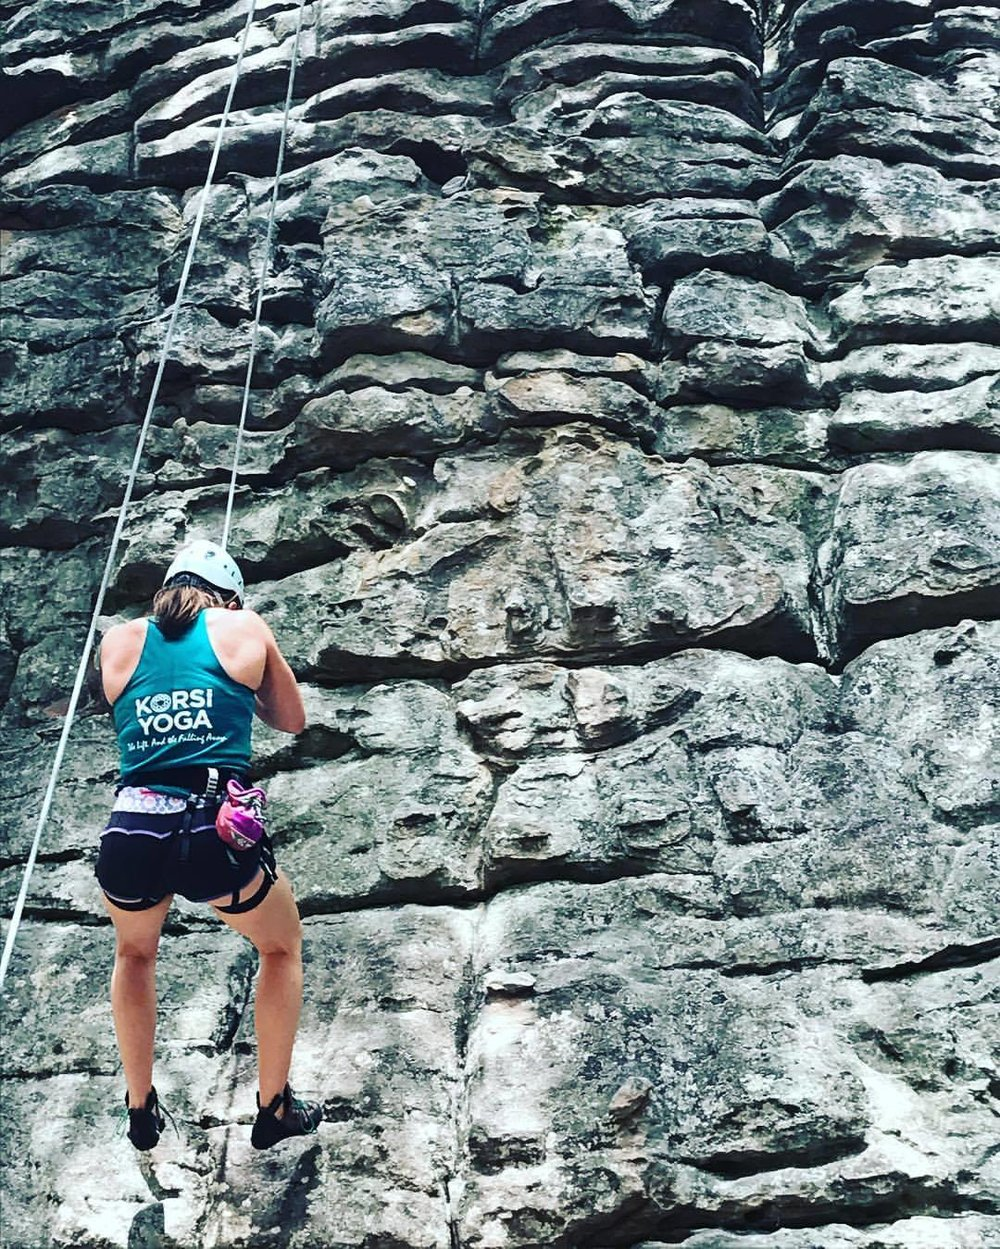 JAMESTOWN, AL Climbing &Yoga - We can't think of a better way to spend a weekend?